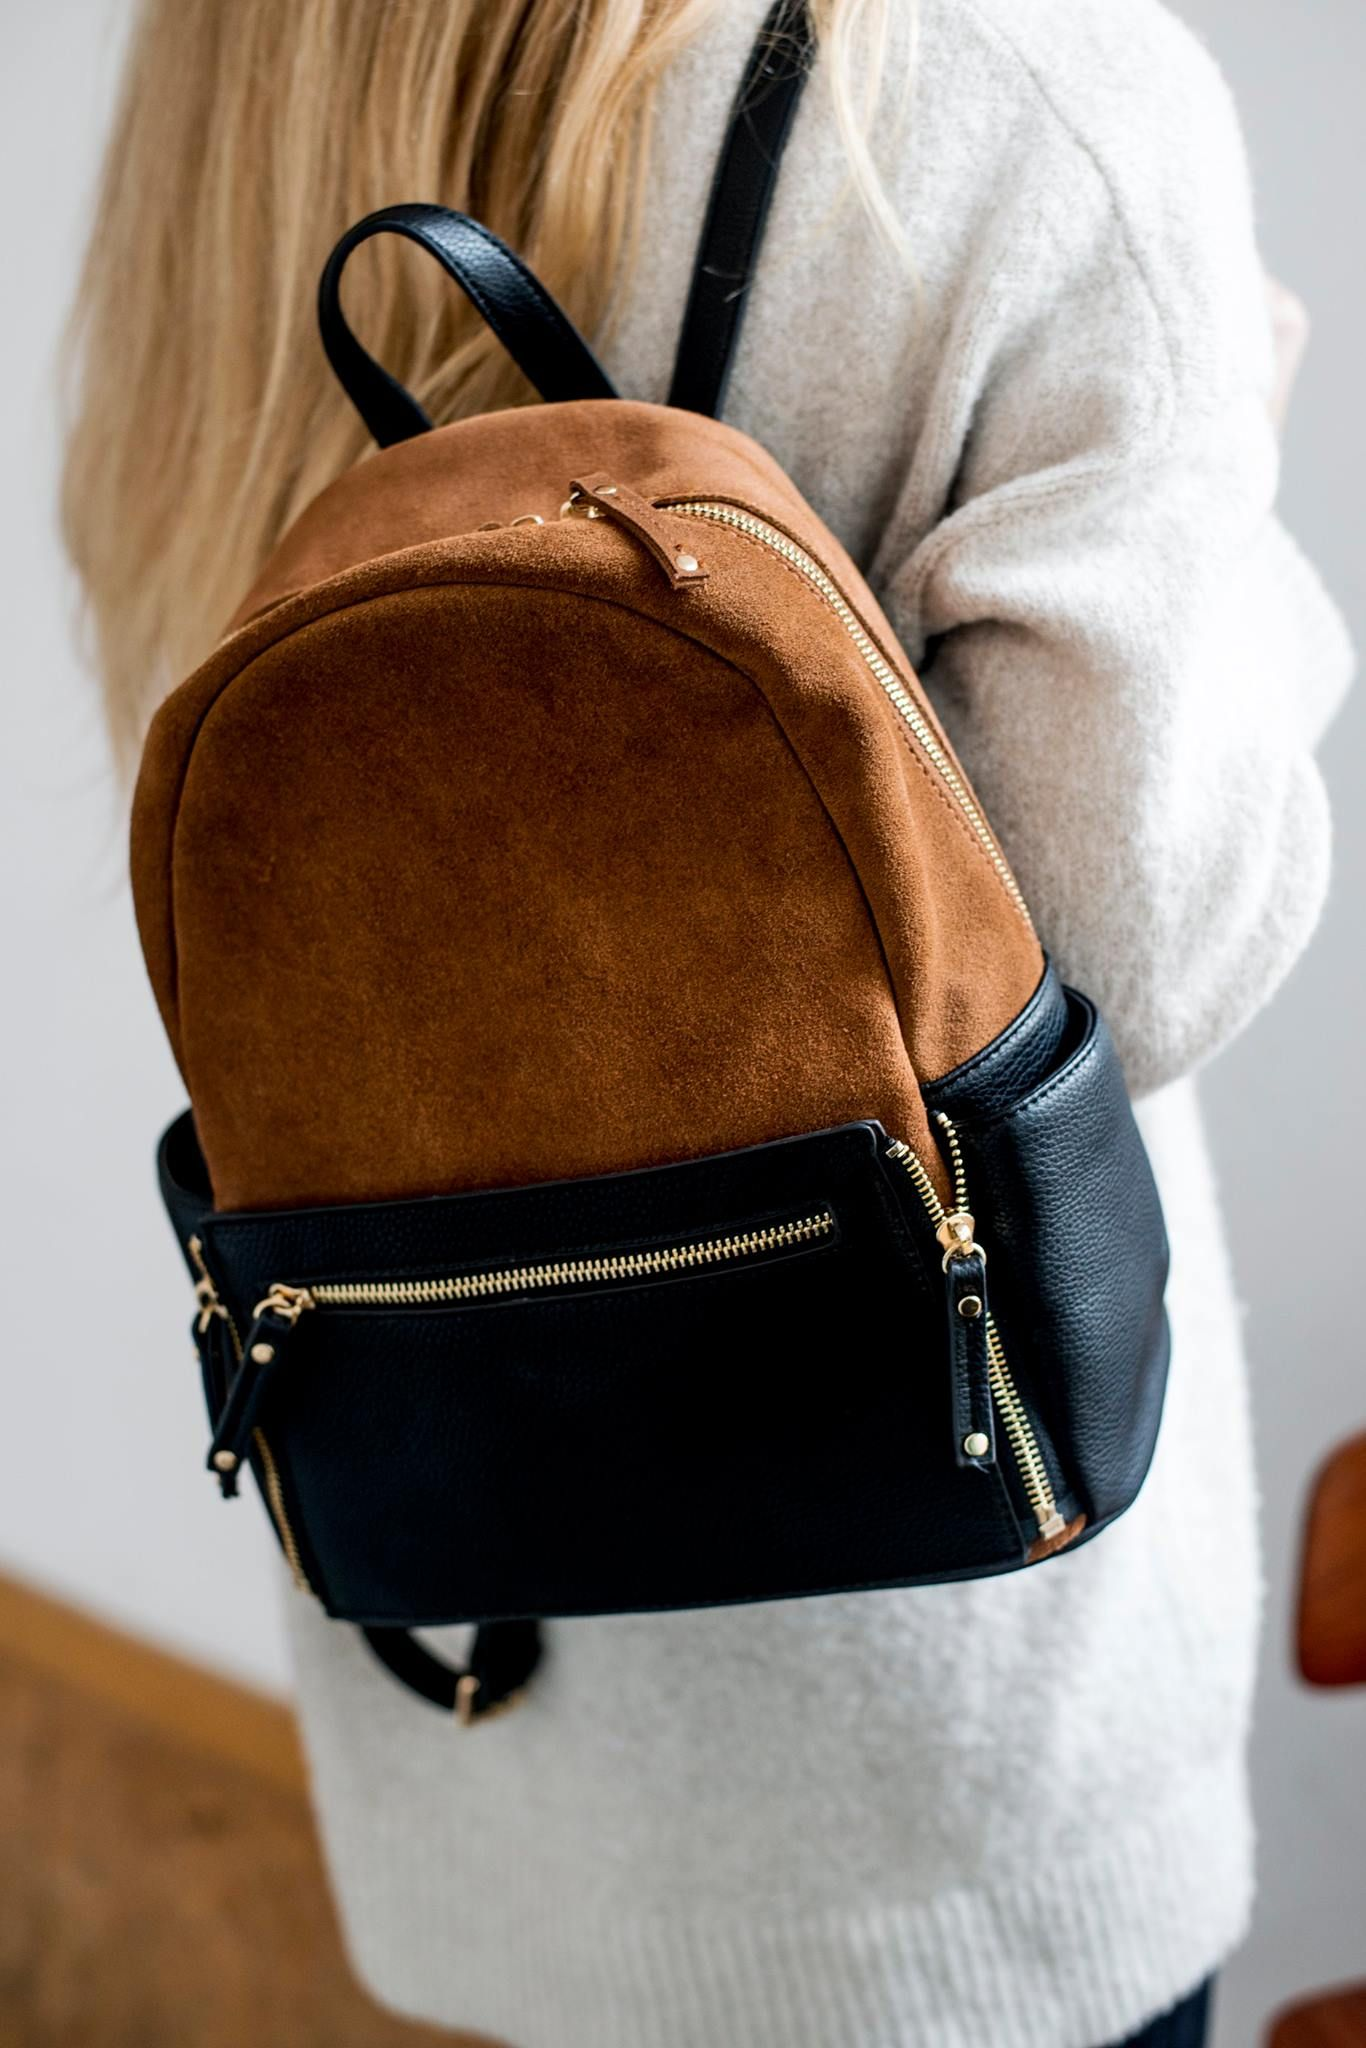 d19a338f018 Parfois backpack   www.yourddofme.be    elinerey   My Style ...